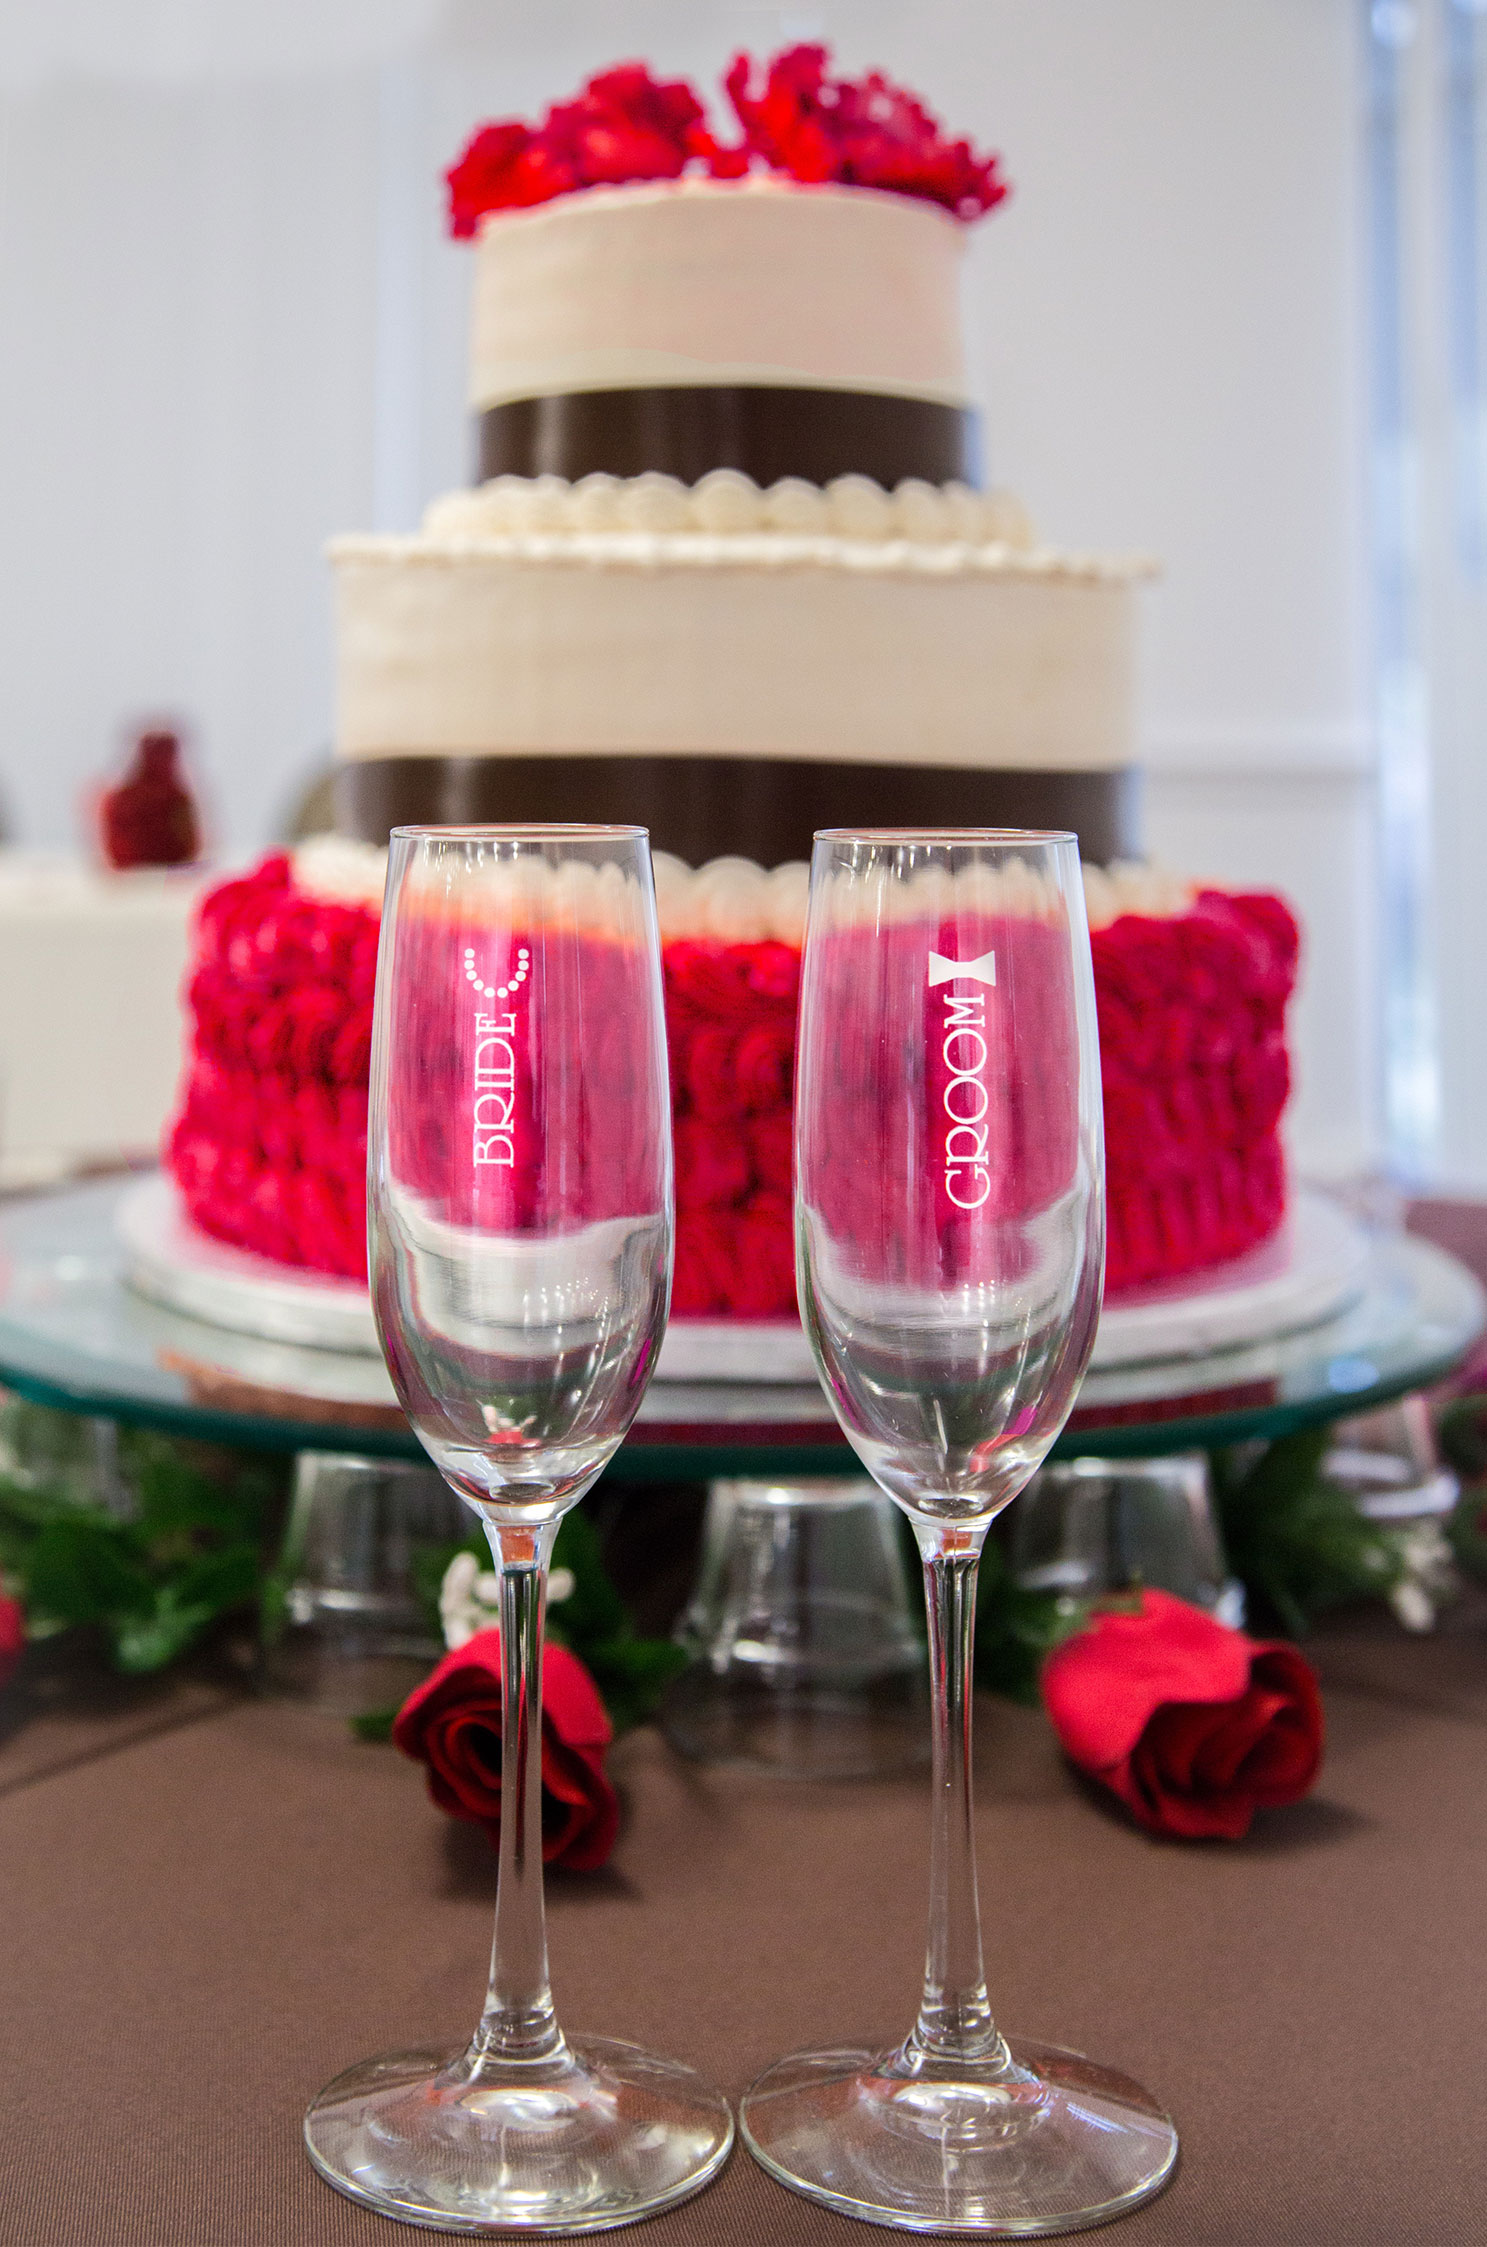 Champagne Glasses In Front Of A Wedding Cake